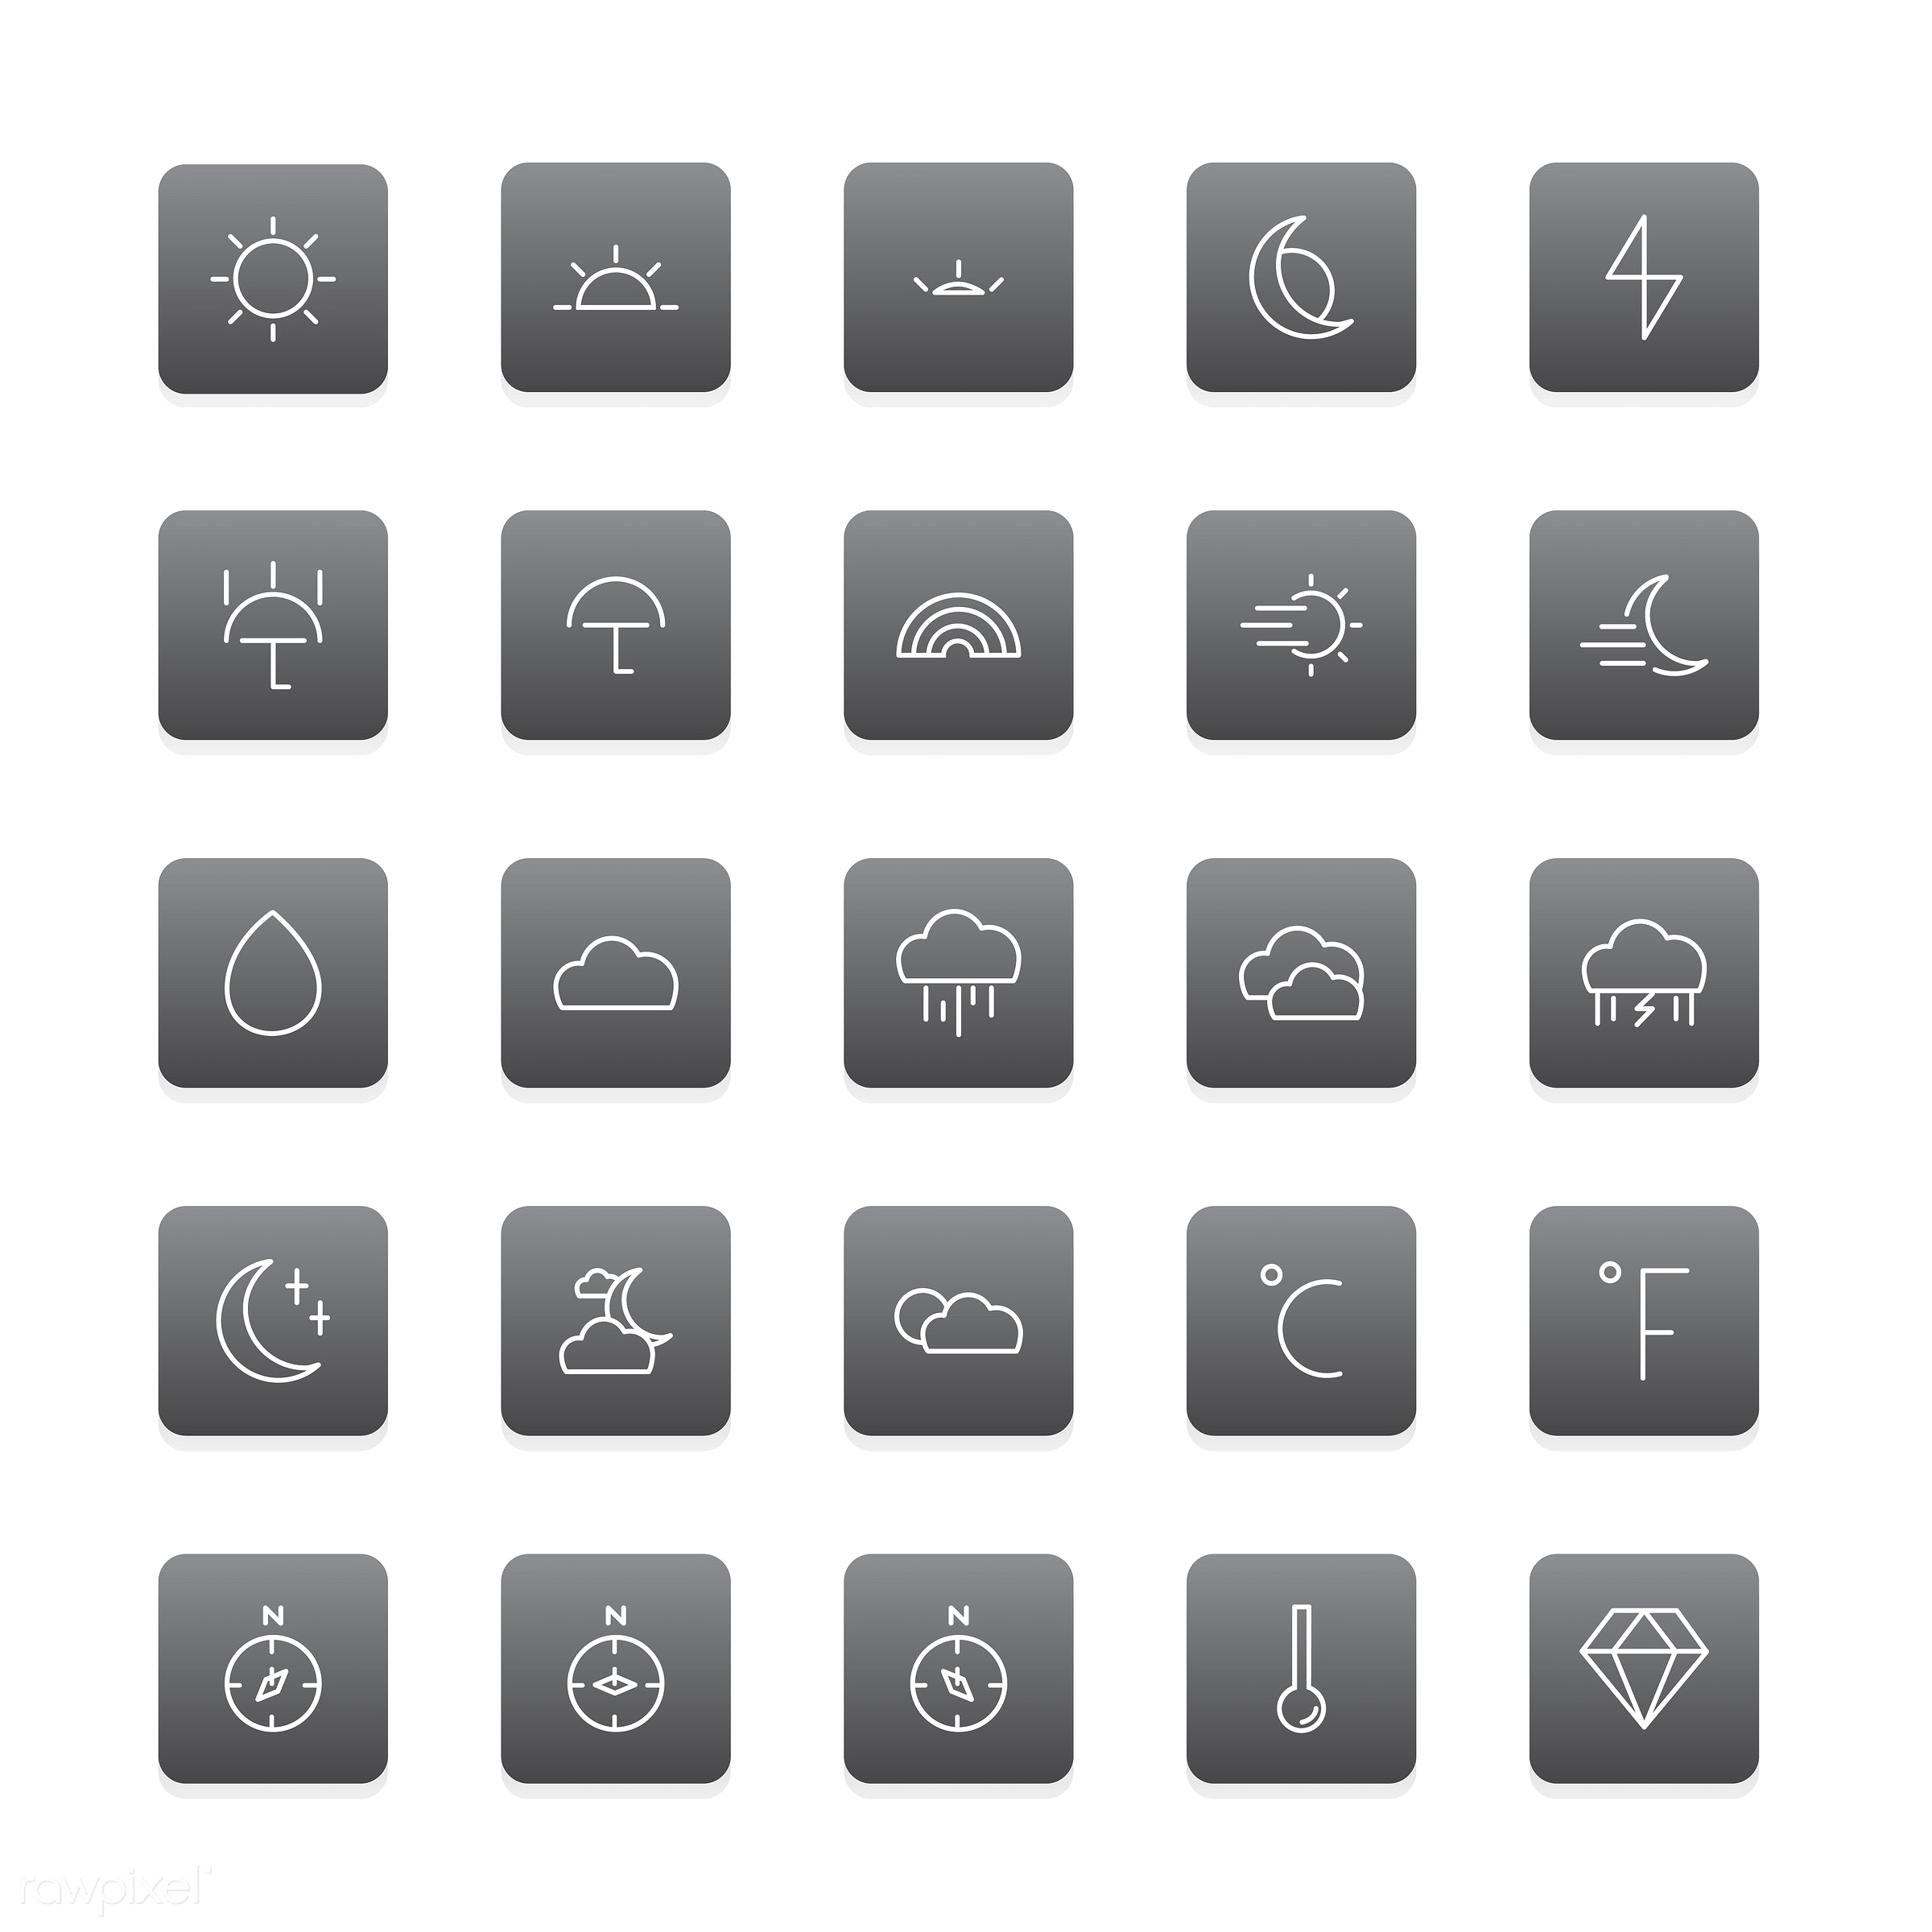 Vector of weather icon - collection, design, flat, graphic, icon, illustration, isolated, layout, platform, set, style,...